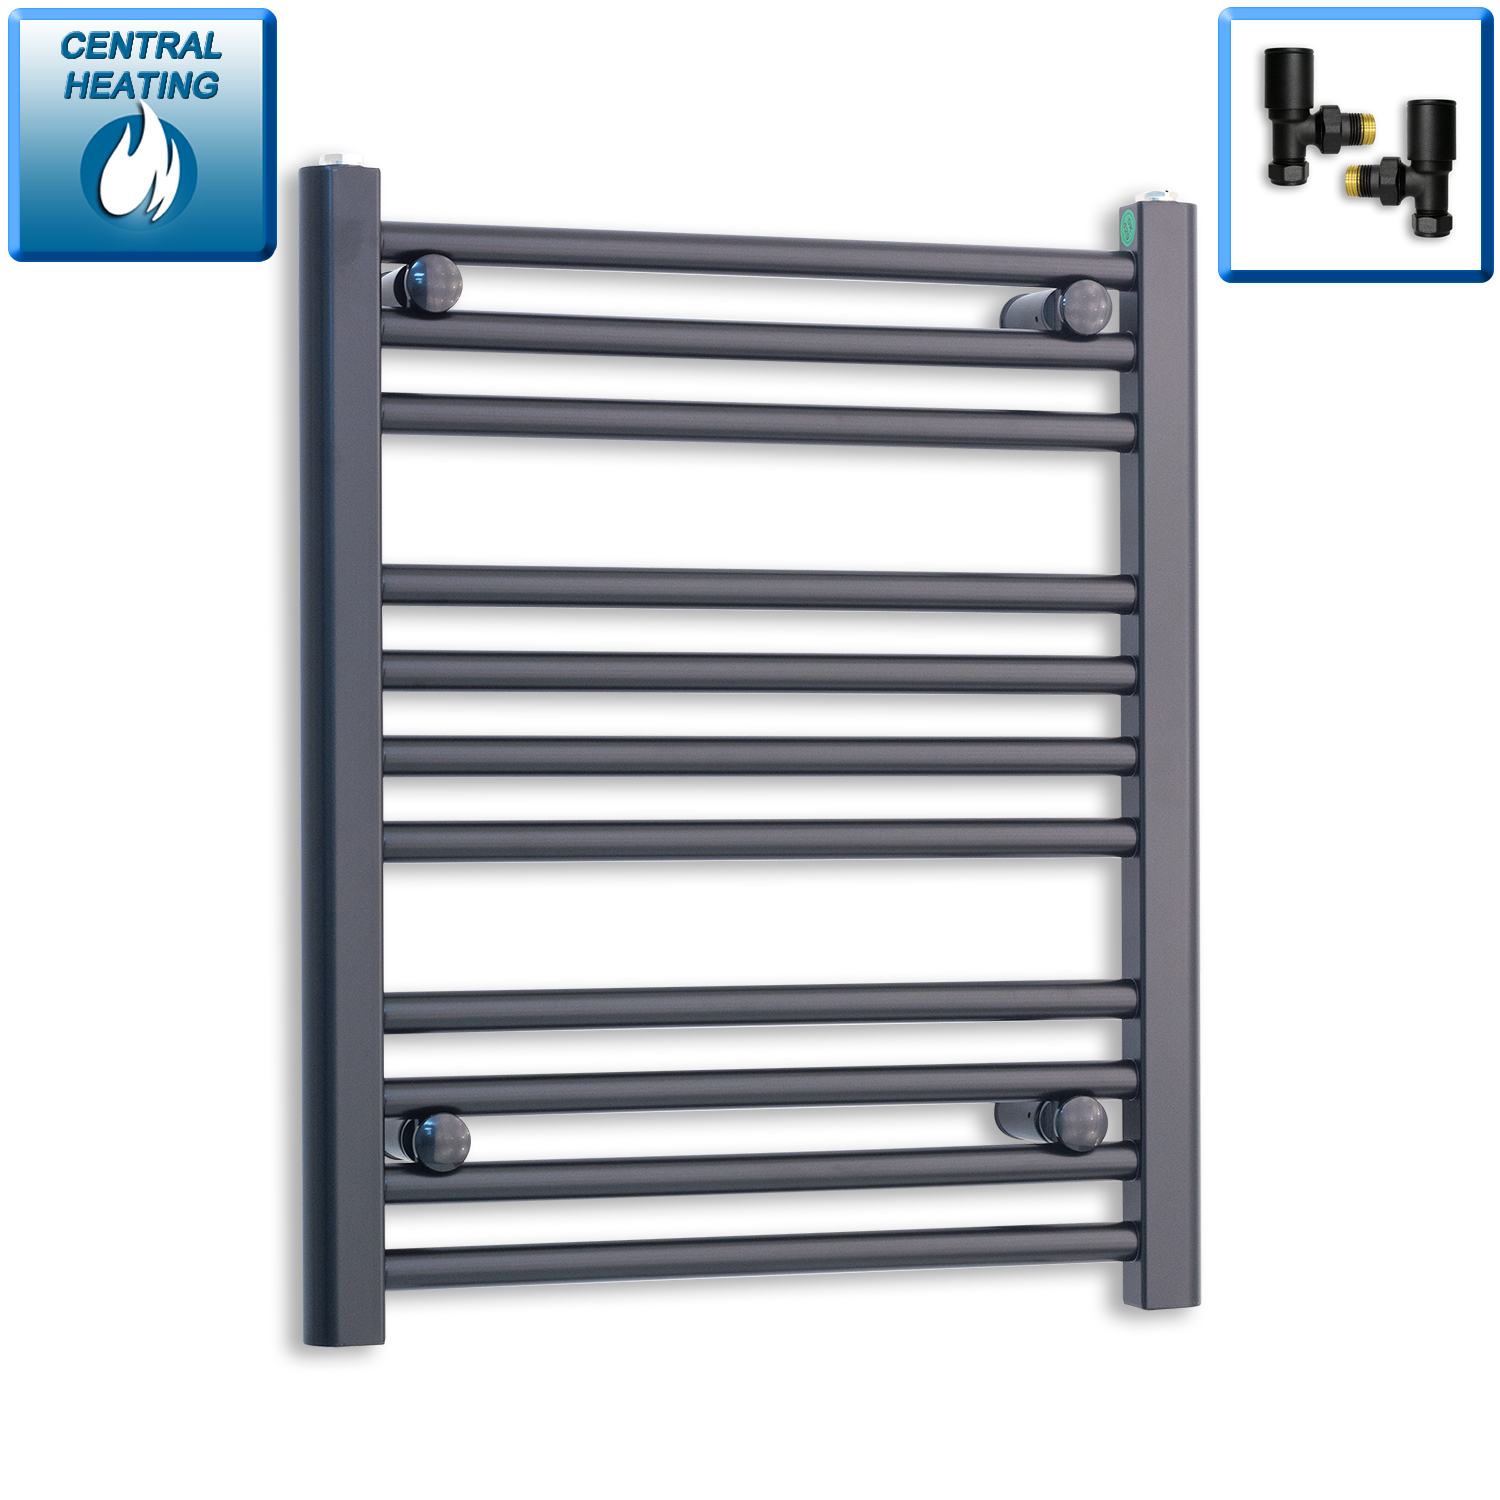 500mm Wide 600mm High Flat Black Heated Towel Rail Radiator HTR,With Angled Valve